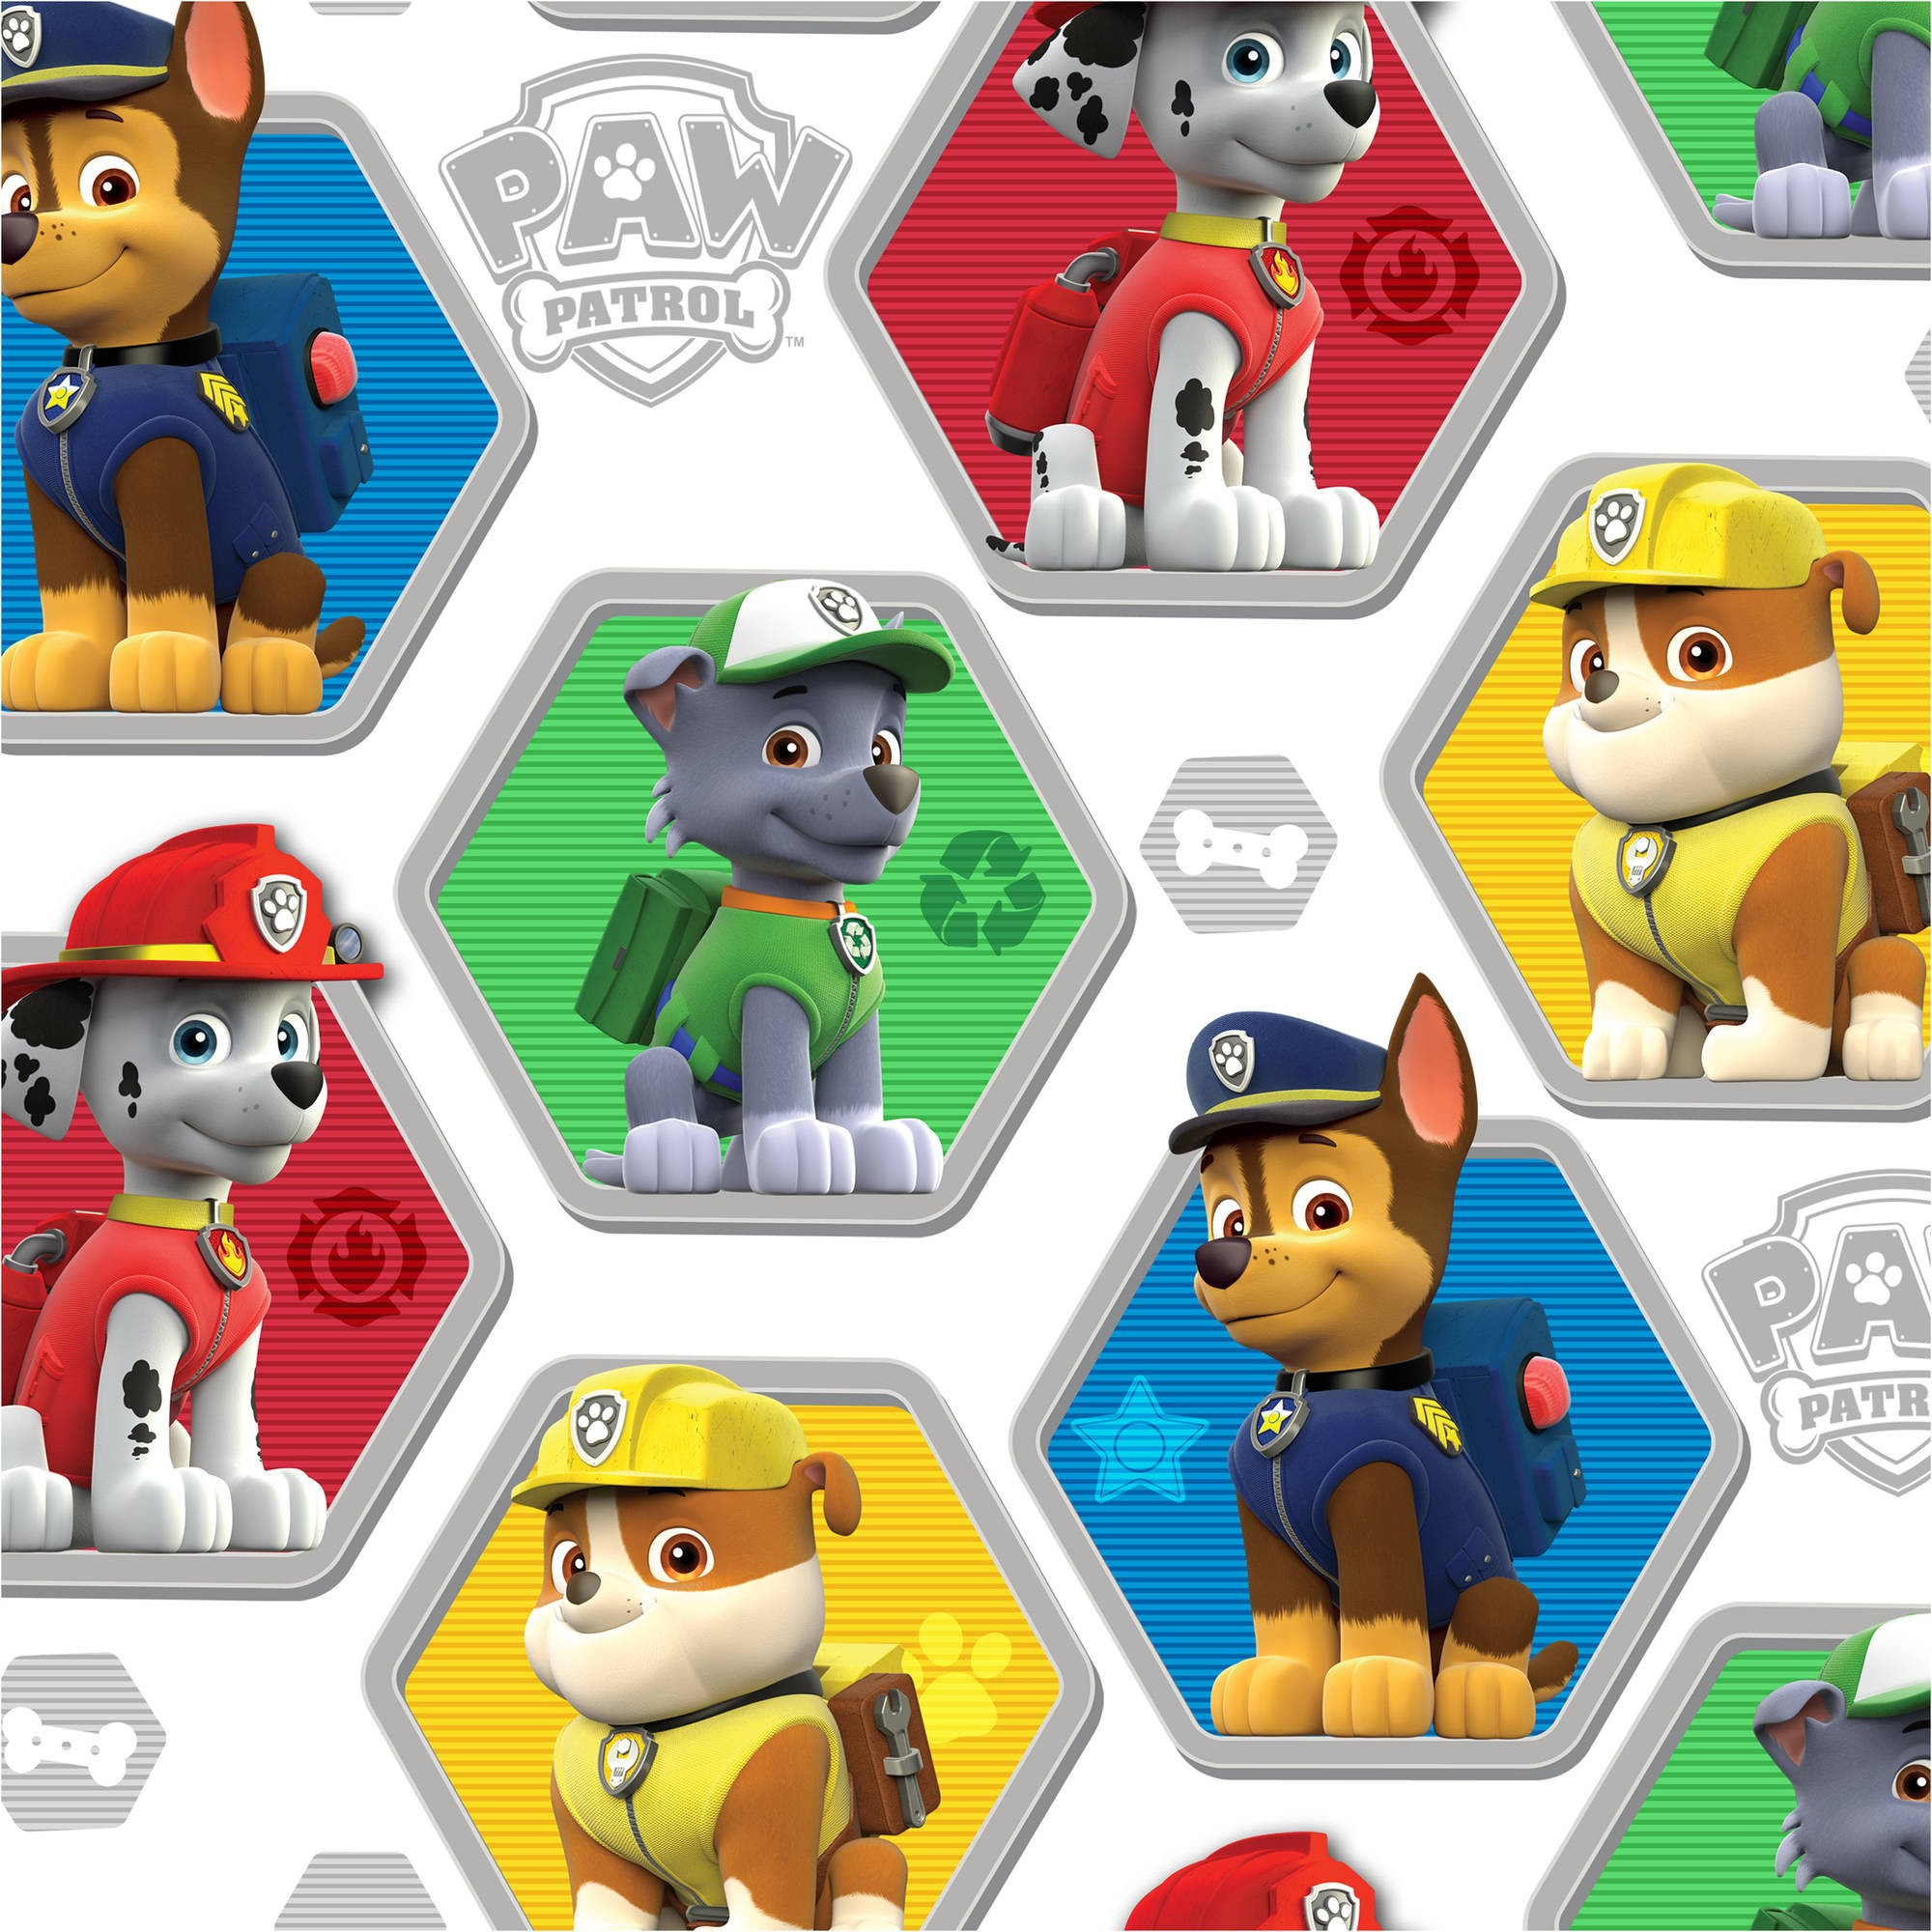 paw patrol background ·① download free wallpapers for